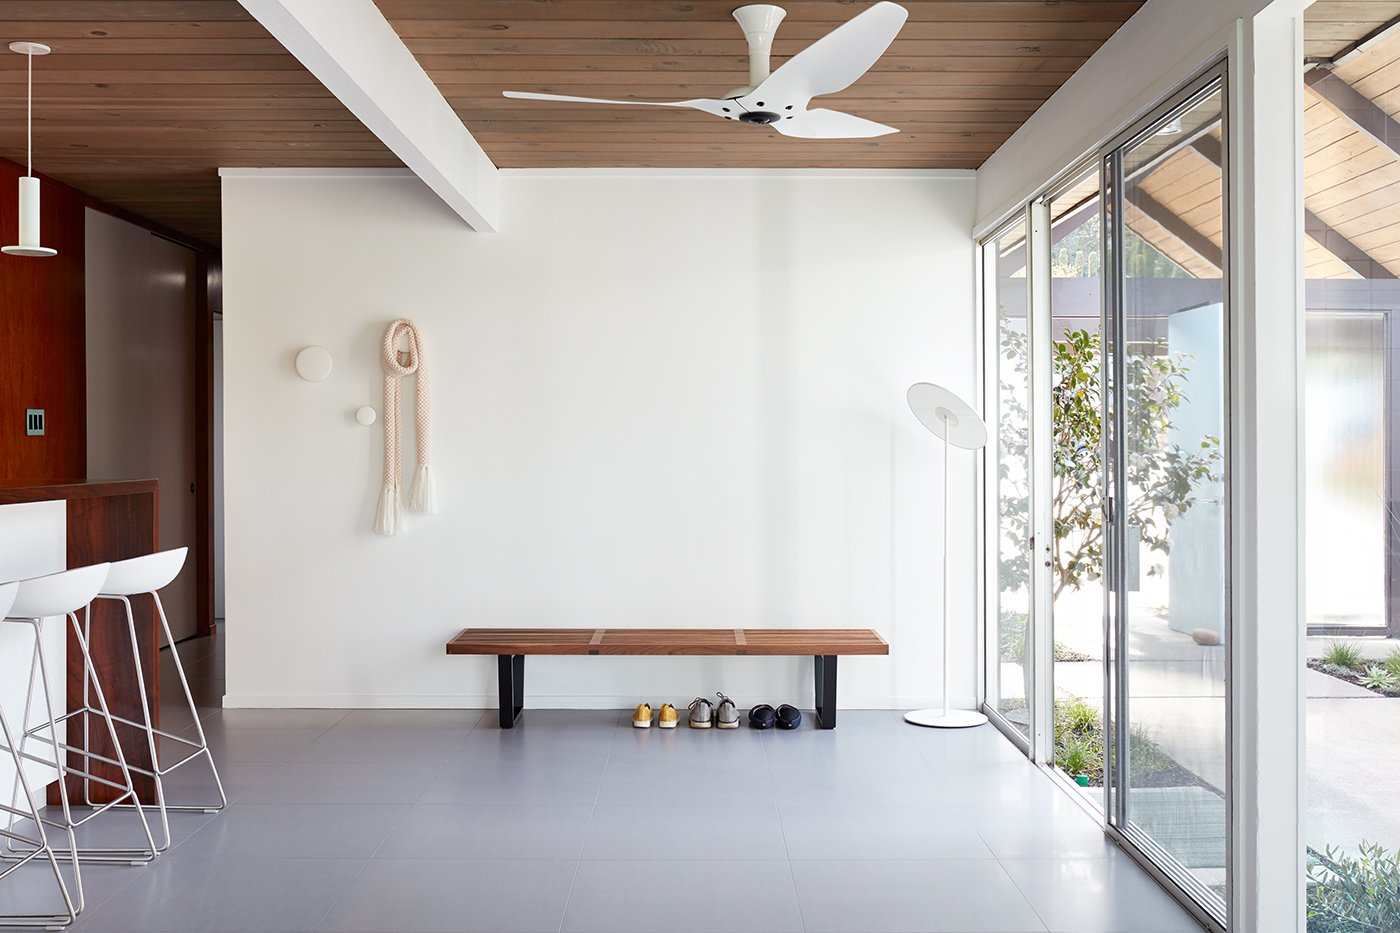 Kitchen The space between the kitchen and atrium is also flooded with natural light.    Photo 8 of 14 in This Eichler Home in California Mixes Scandinavian Vibes With Midcentury Charm